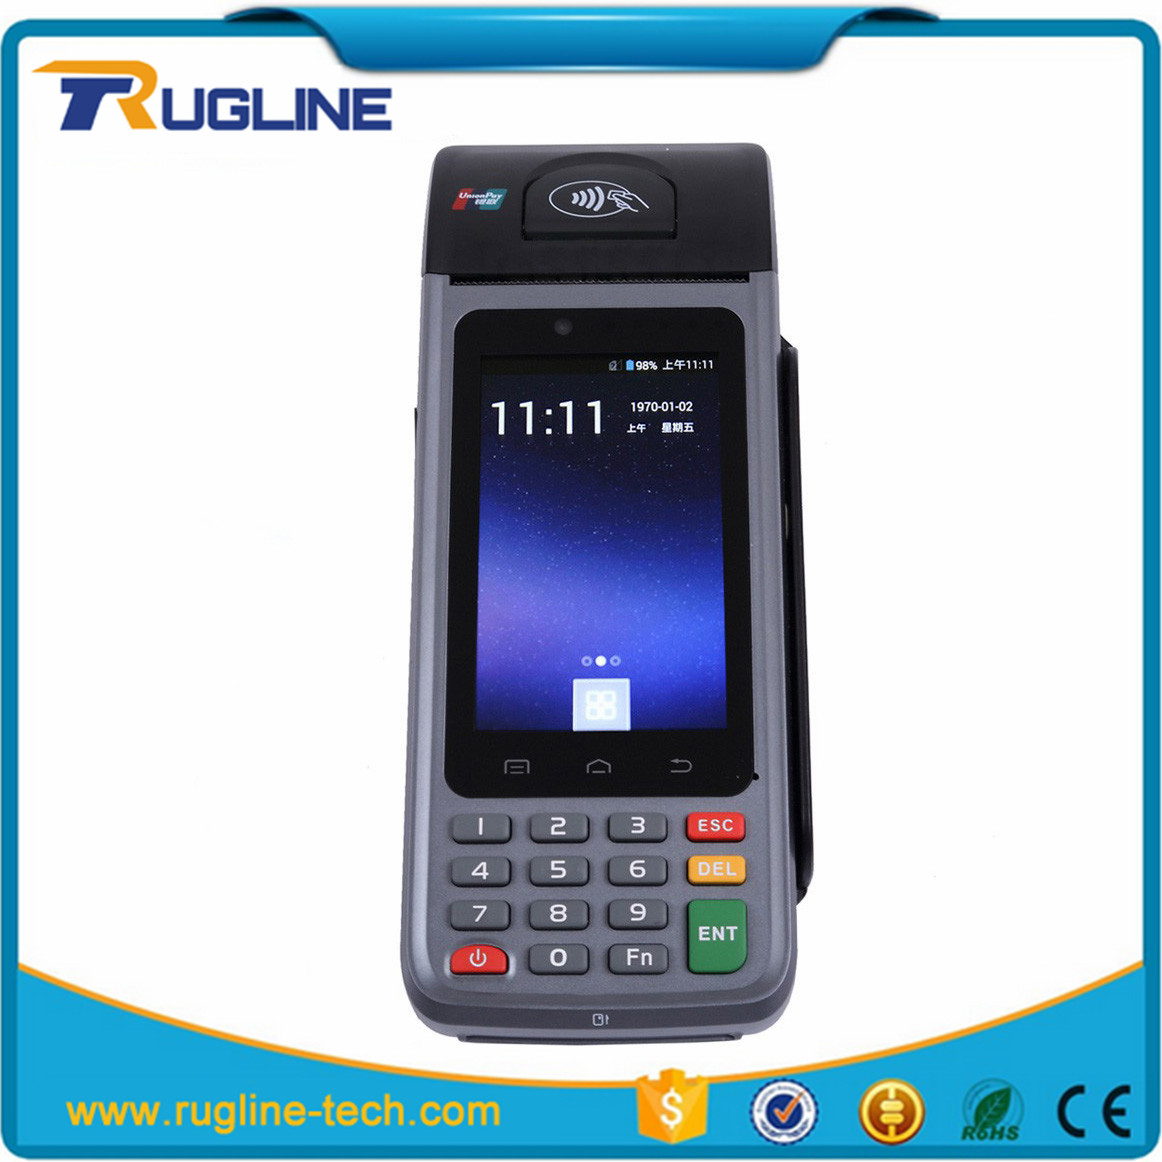 Mobile printer payment terminal android handheld pda with built-in printer